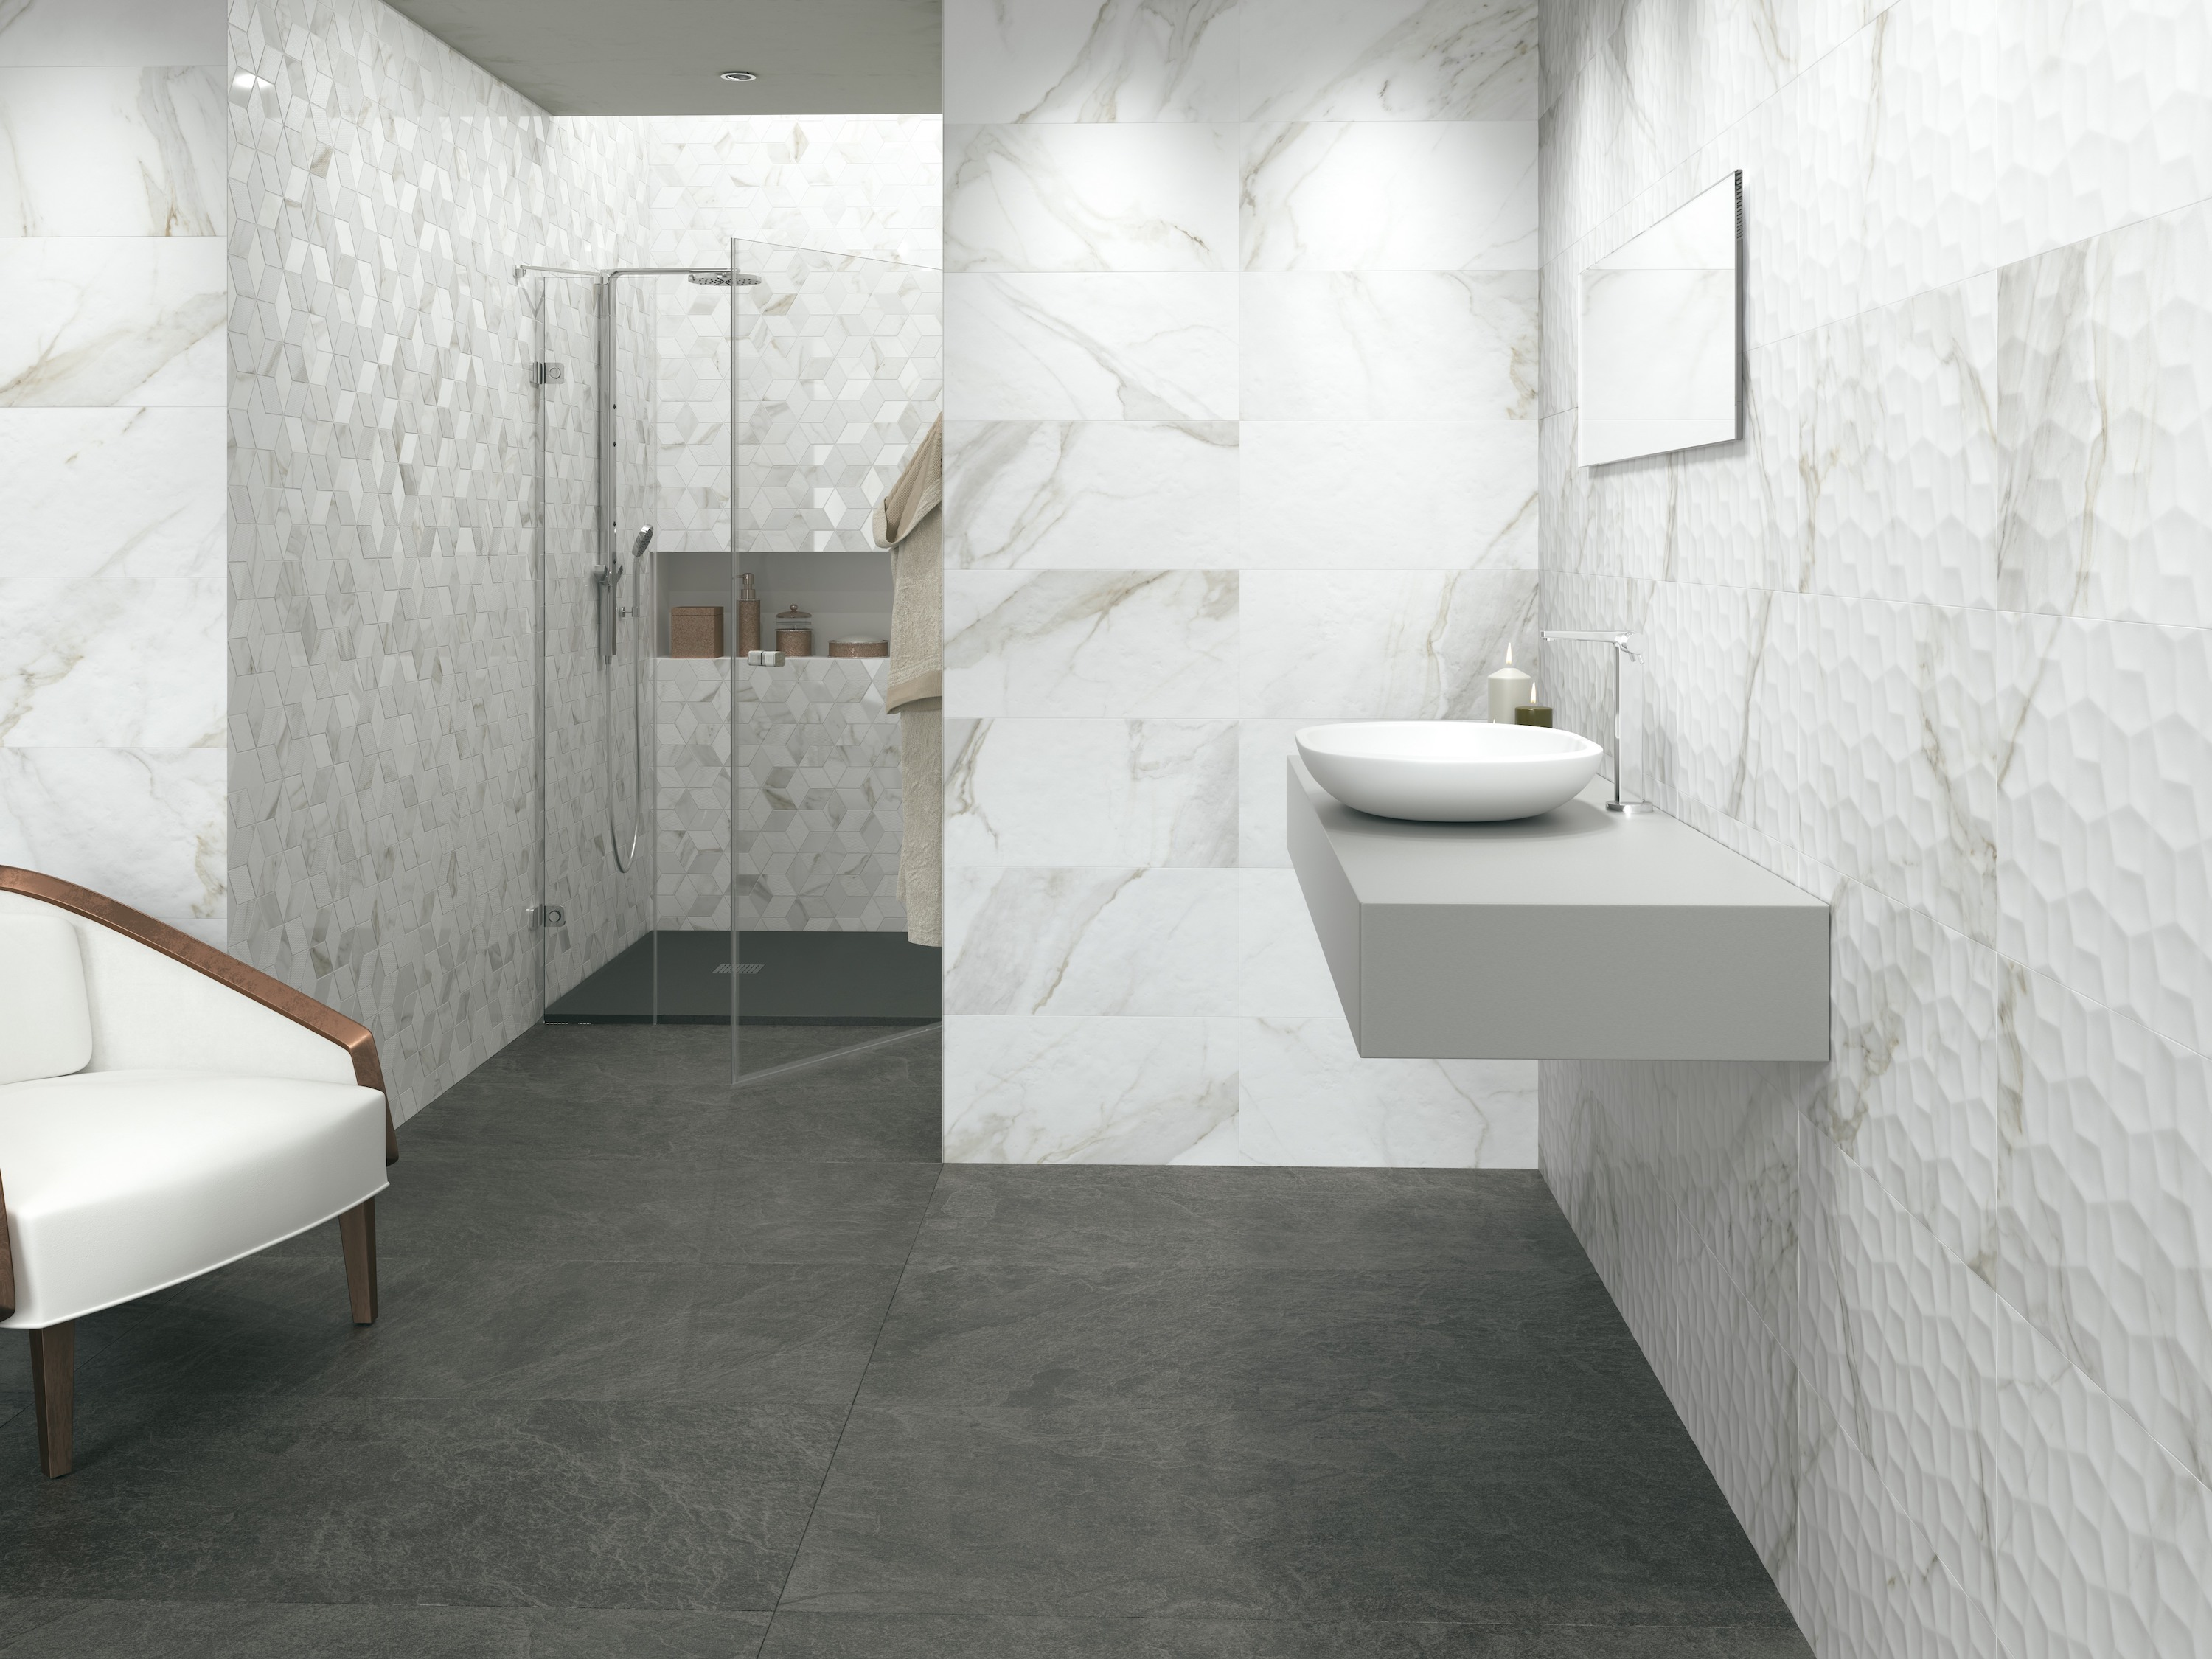 Bagno Handicap M S International, Inc. Releases Five New Porcelain And